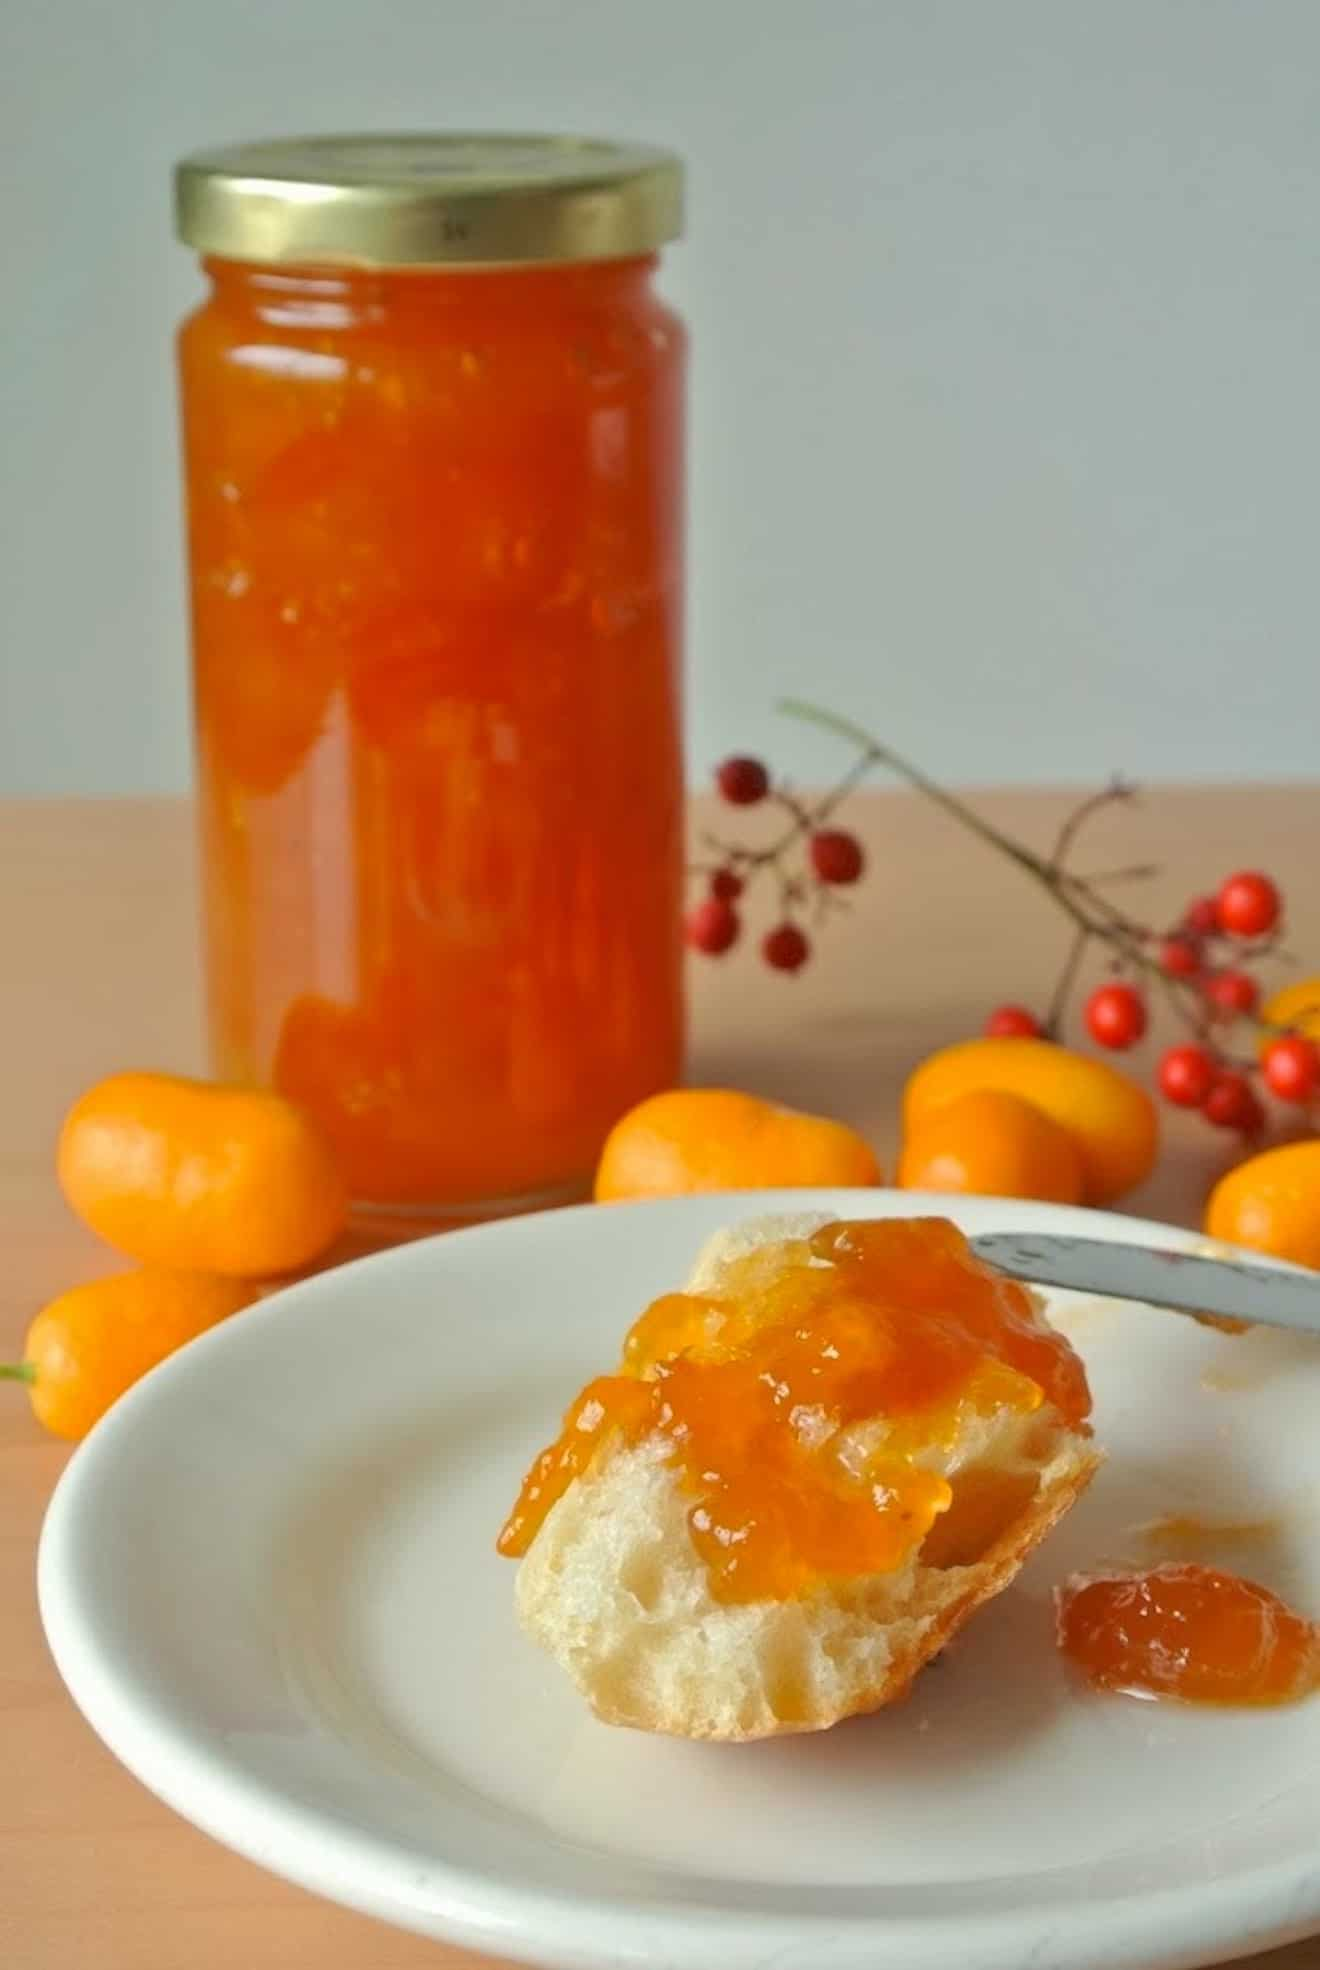 A jar of kumquat marmalade with some spread onto bread